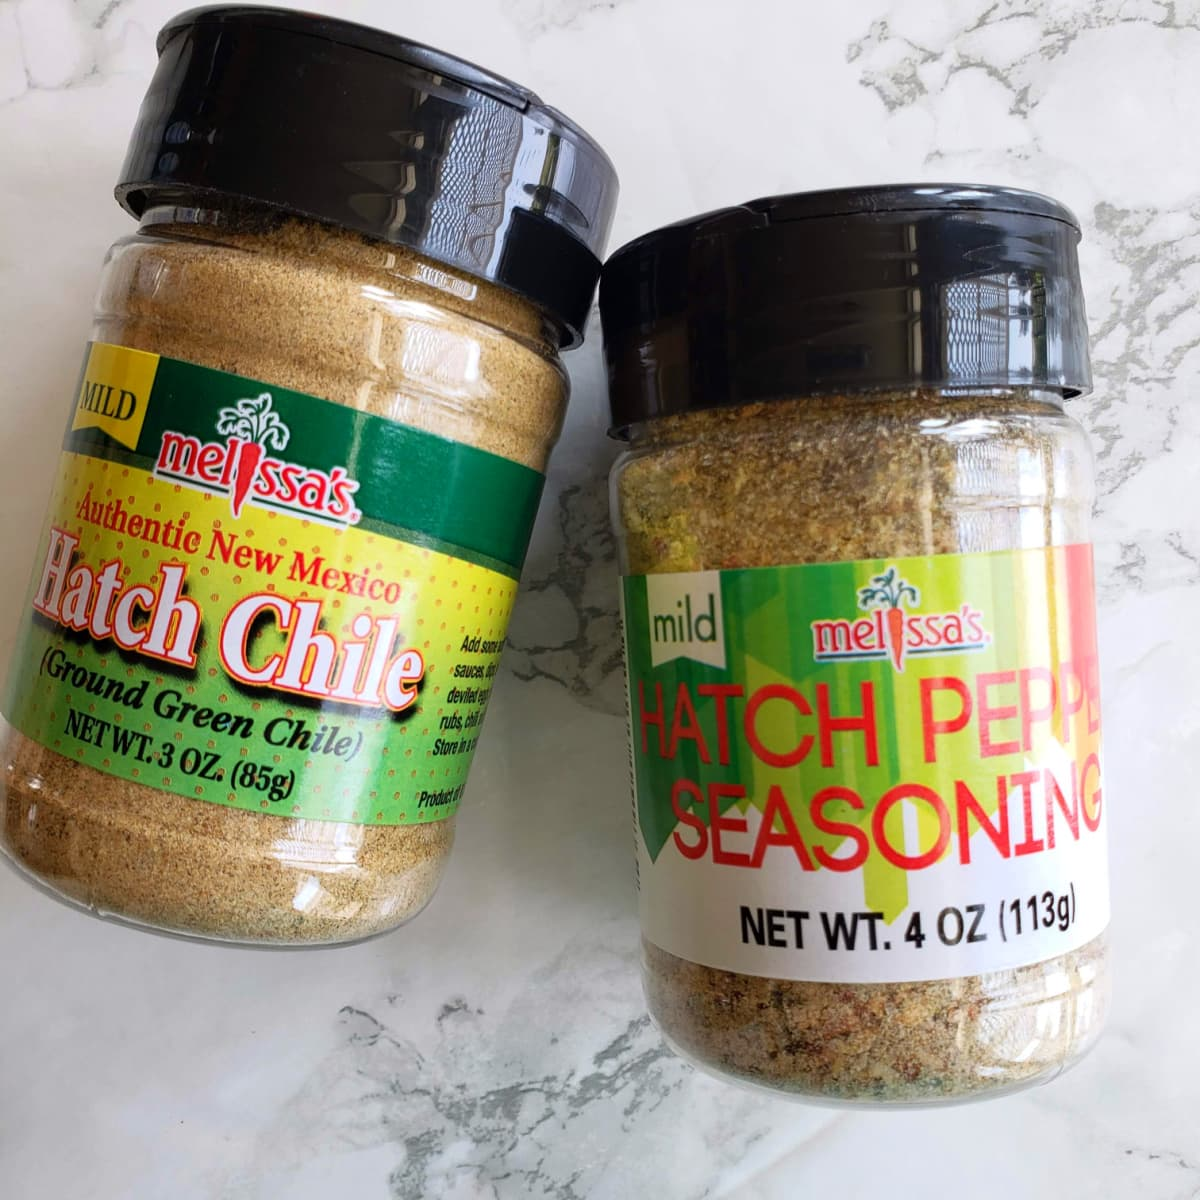 Hatch pepper powder and seasoning from Melissa's Produce